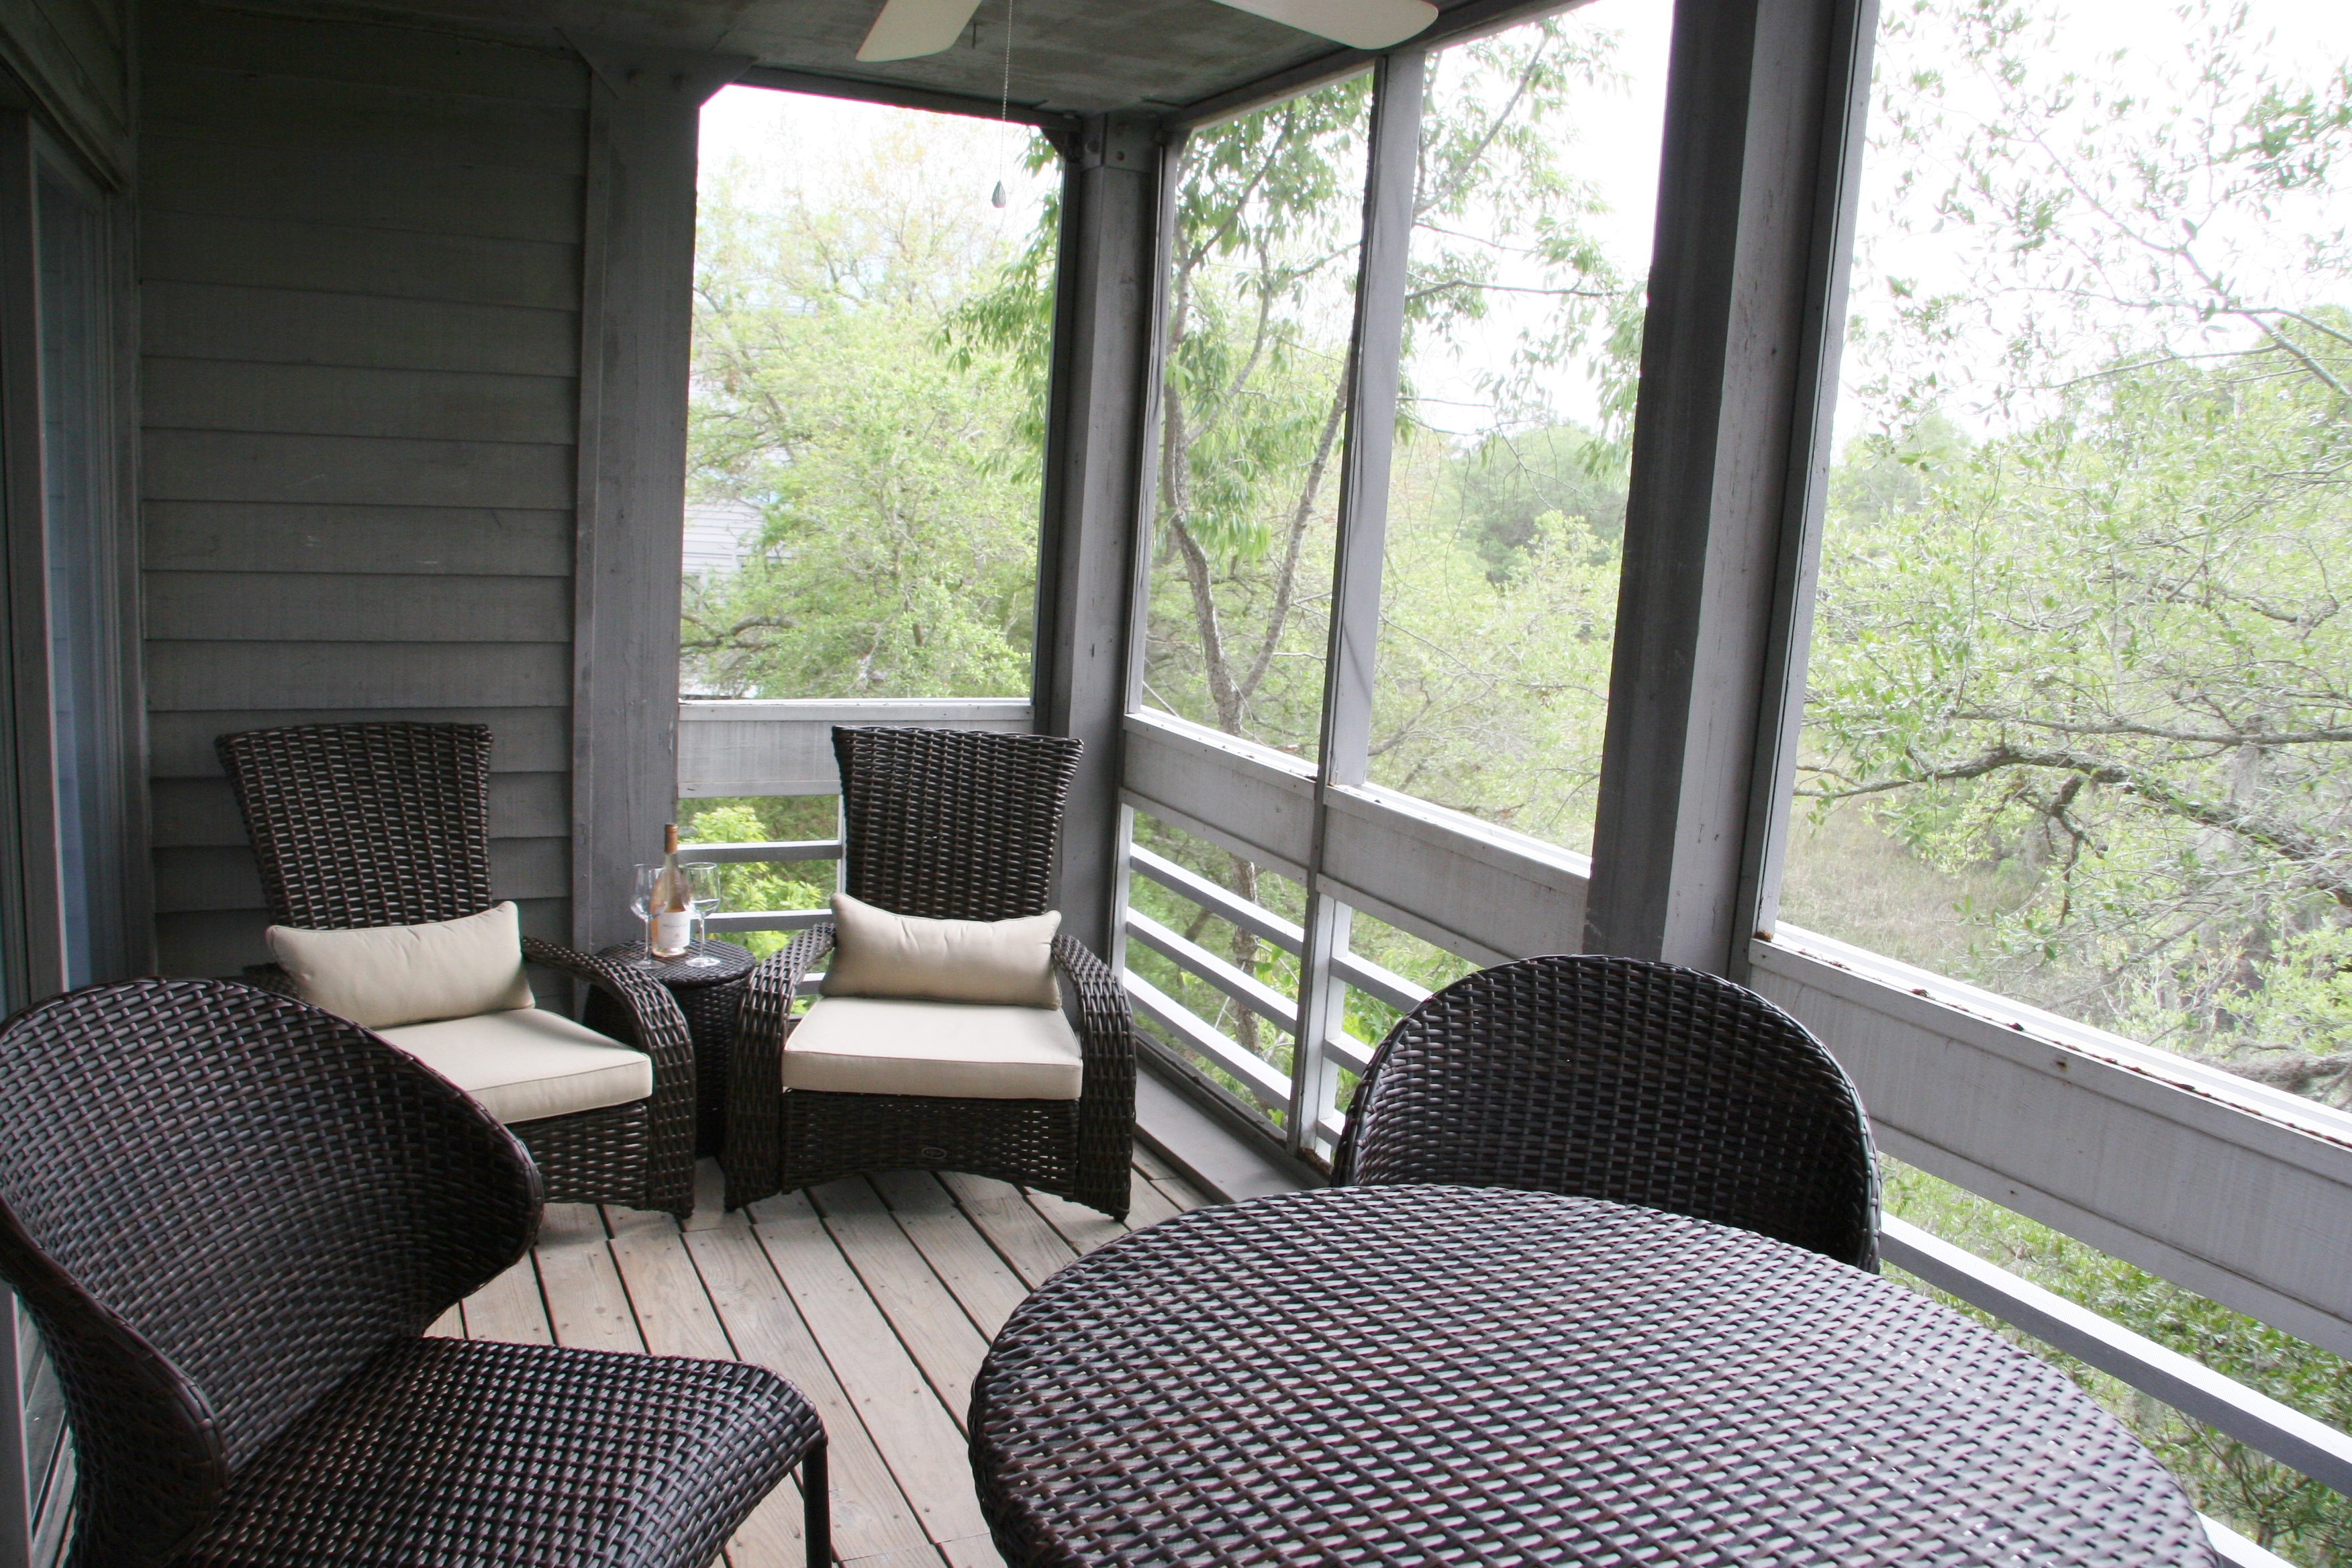 New furniture on the screened in porch off the living area.